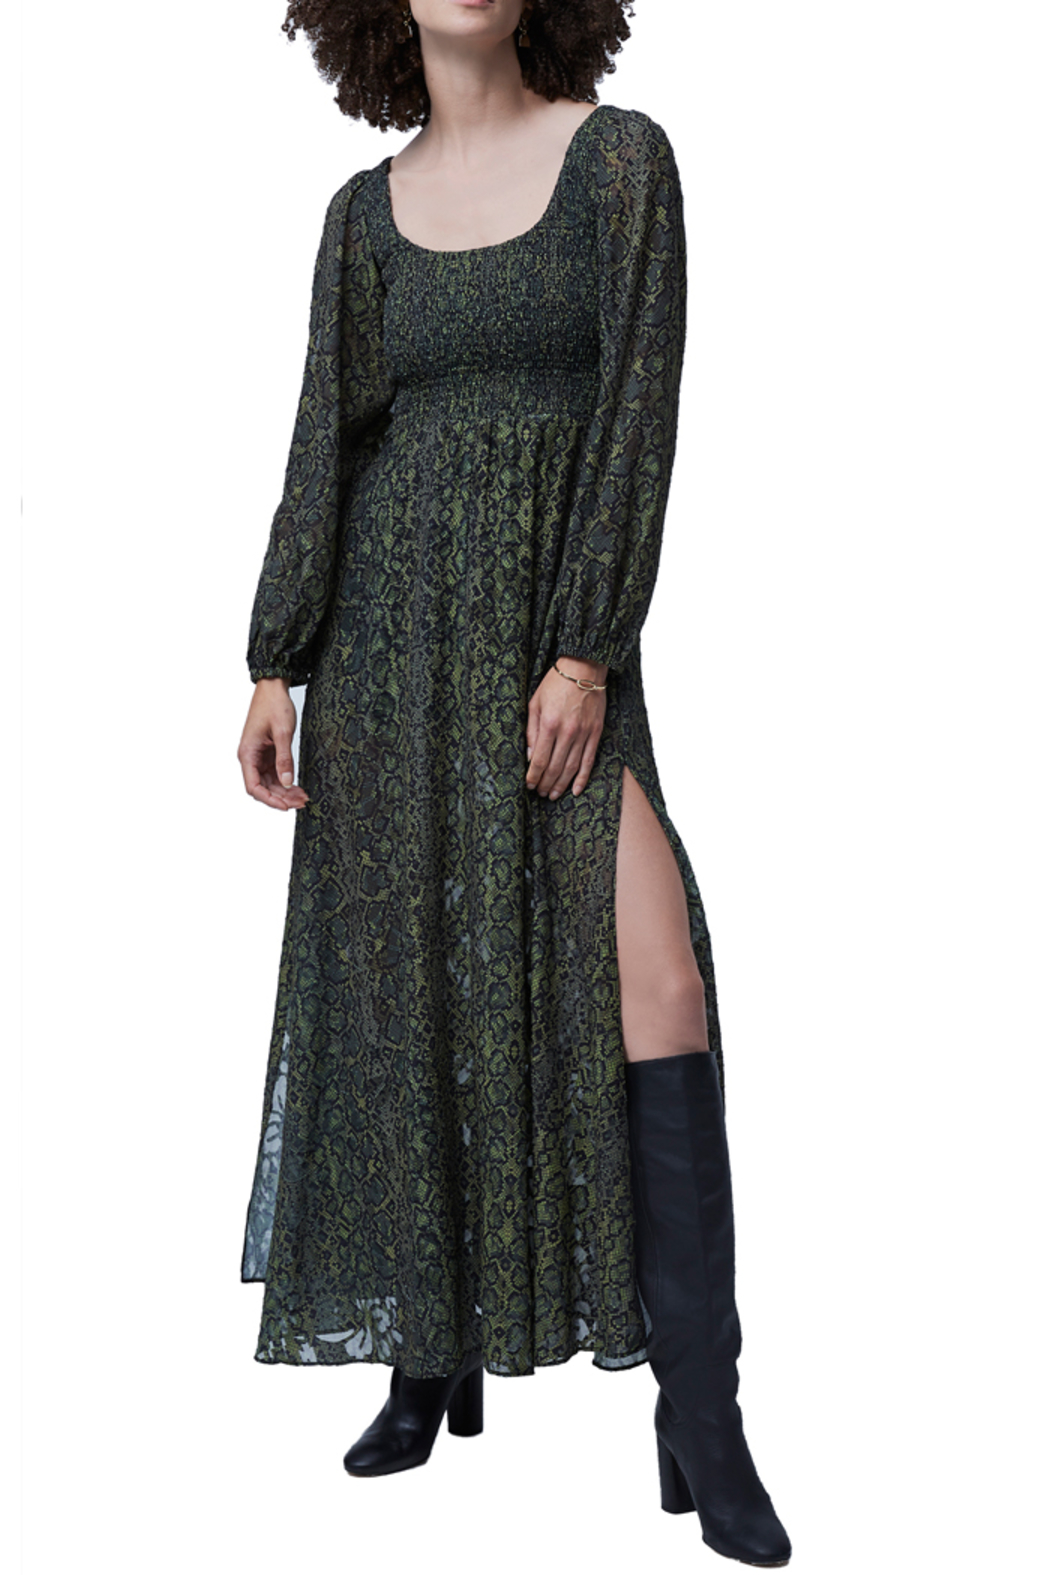 French Connection Green Multi Smocked Maxi Dress - Main Image